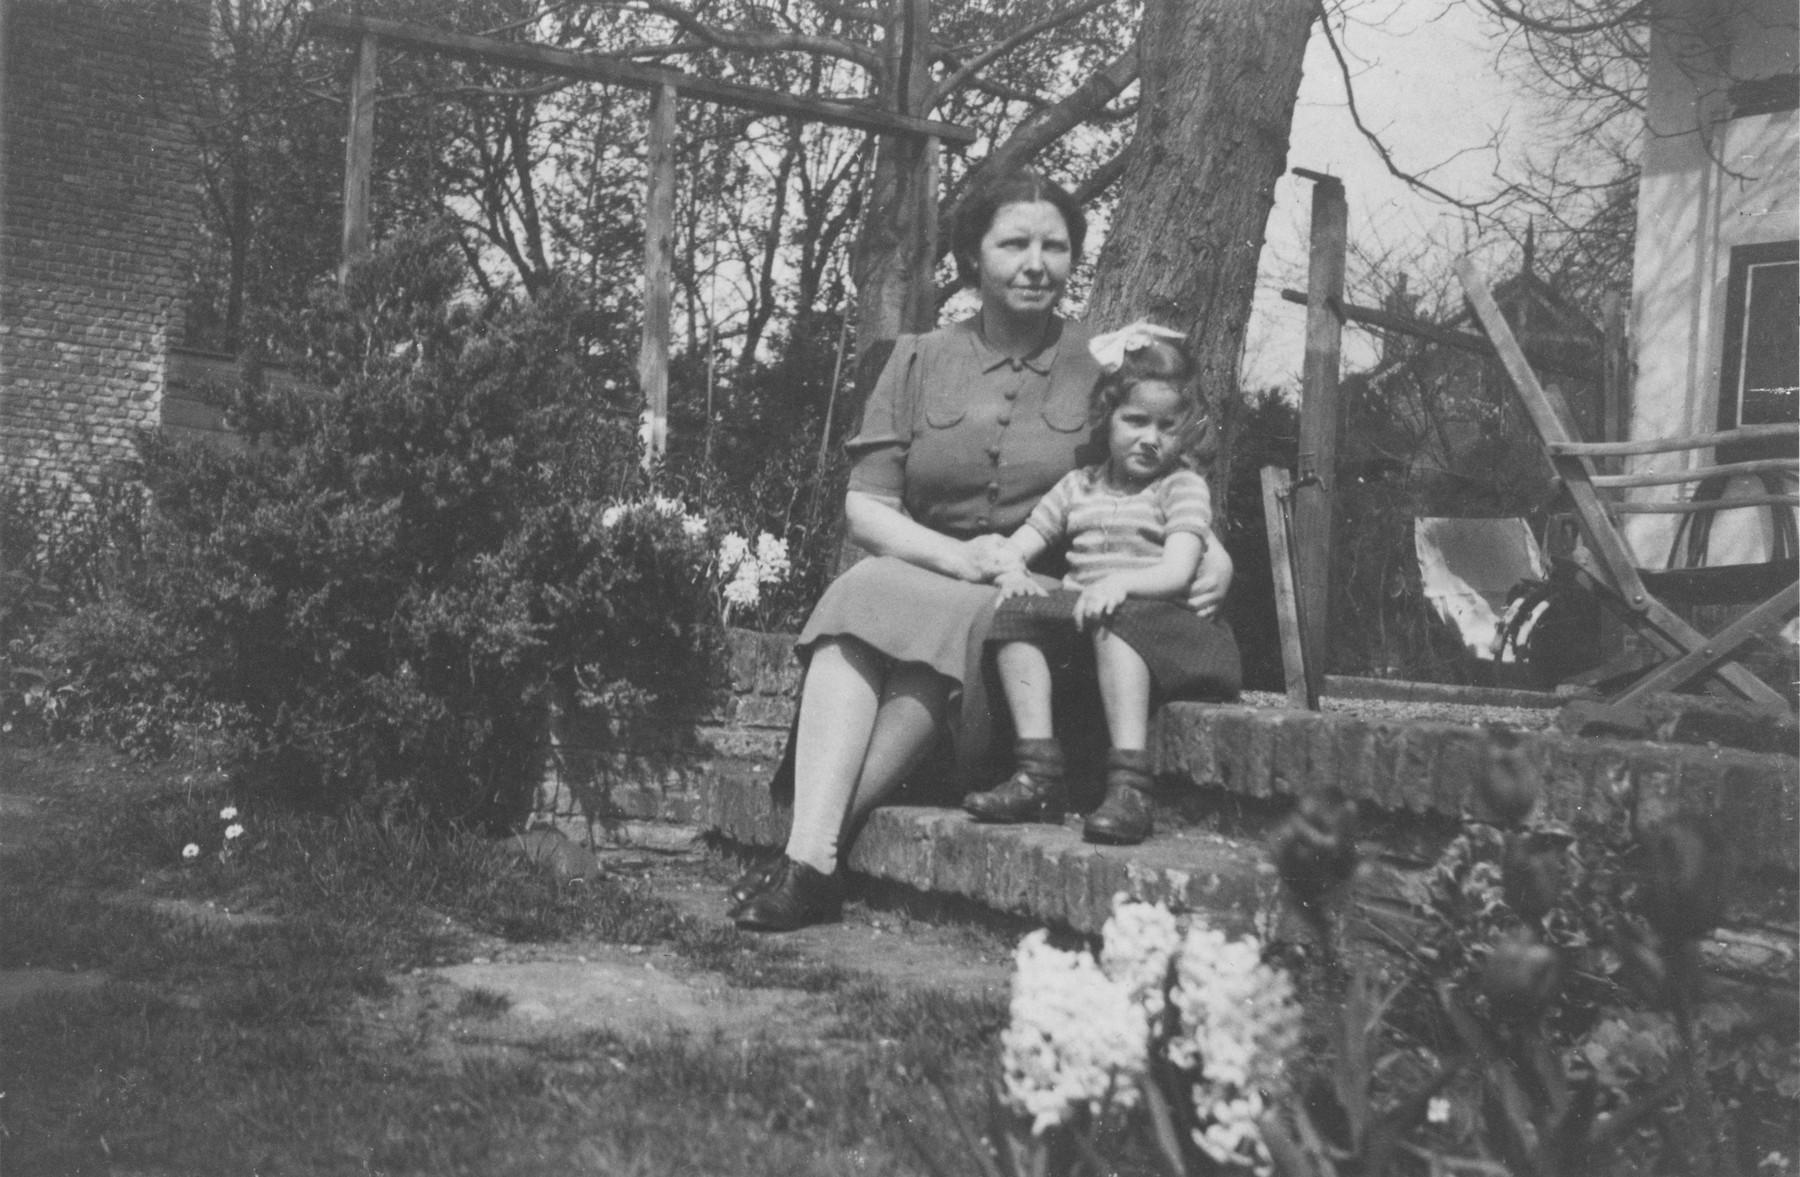 Dutch rescuer Wilhelmina Salters-Kloppenburg, sits on the steps outside her home with Elizabeth Reiss, a Jewish child she is hiding,